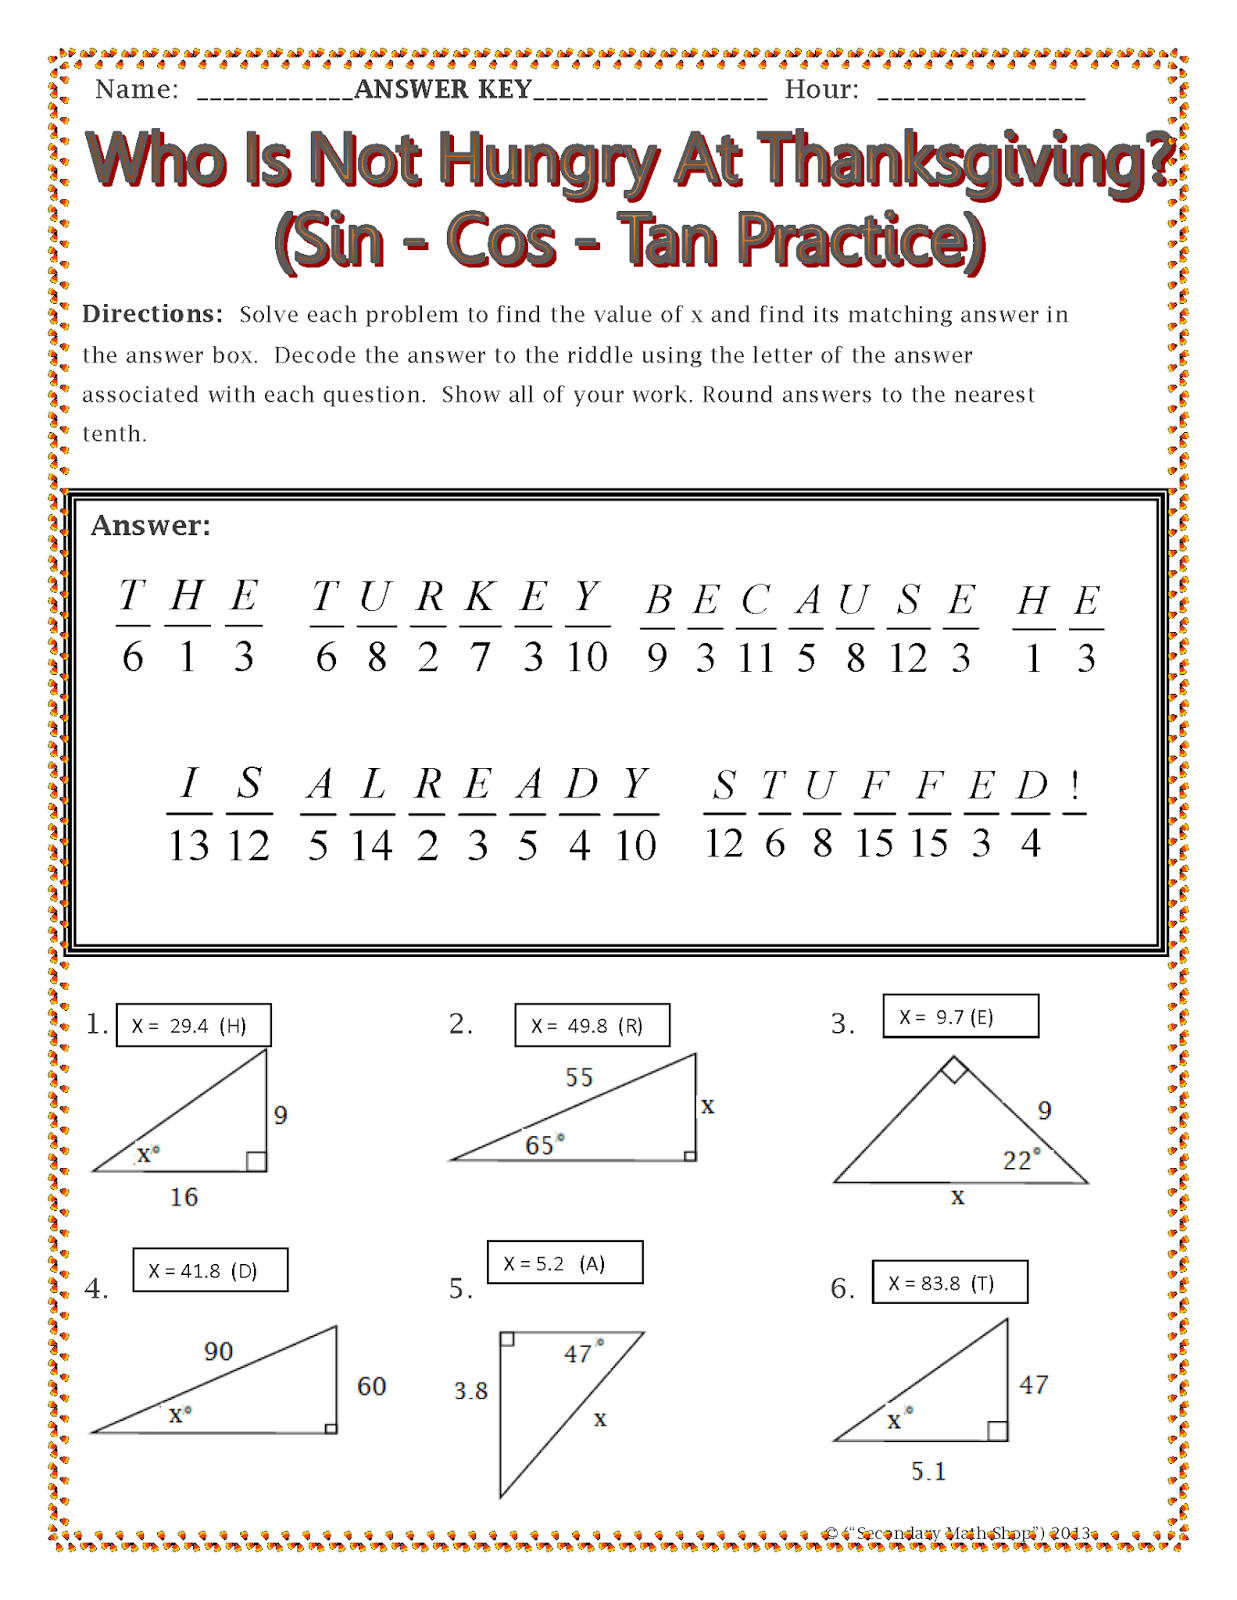 Worksheet #736952: Sin Cos Tan Worksheet – Collection of Sin Cos ...